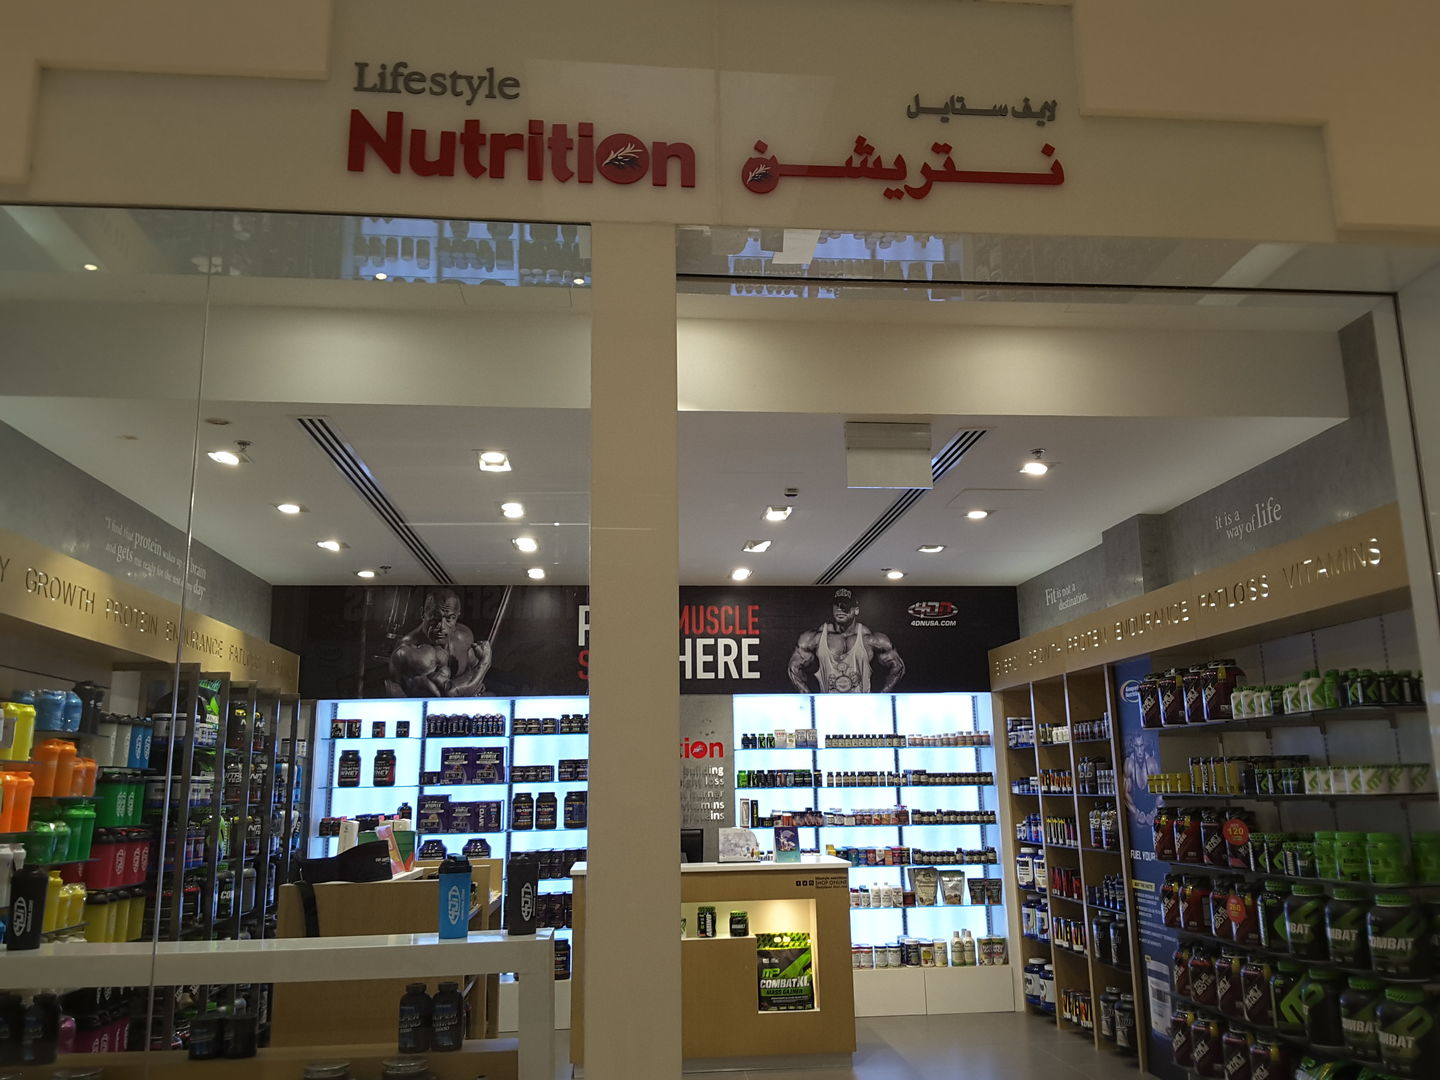 HiDubai-business-lifestyle-nutrition-food-beverage-health-food-supplement-stores-al-shindagha-dubai-2